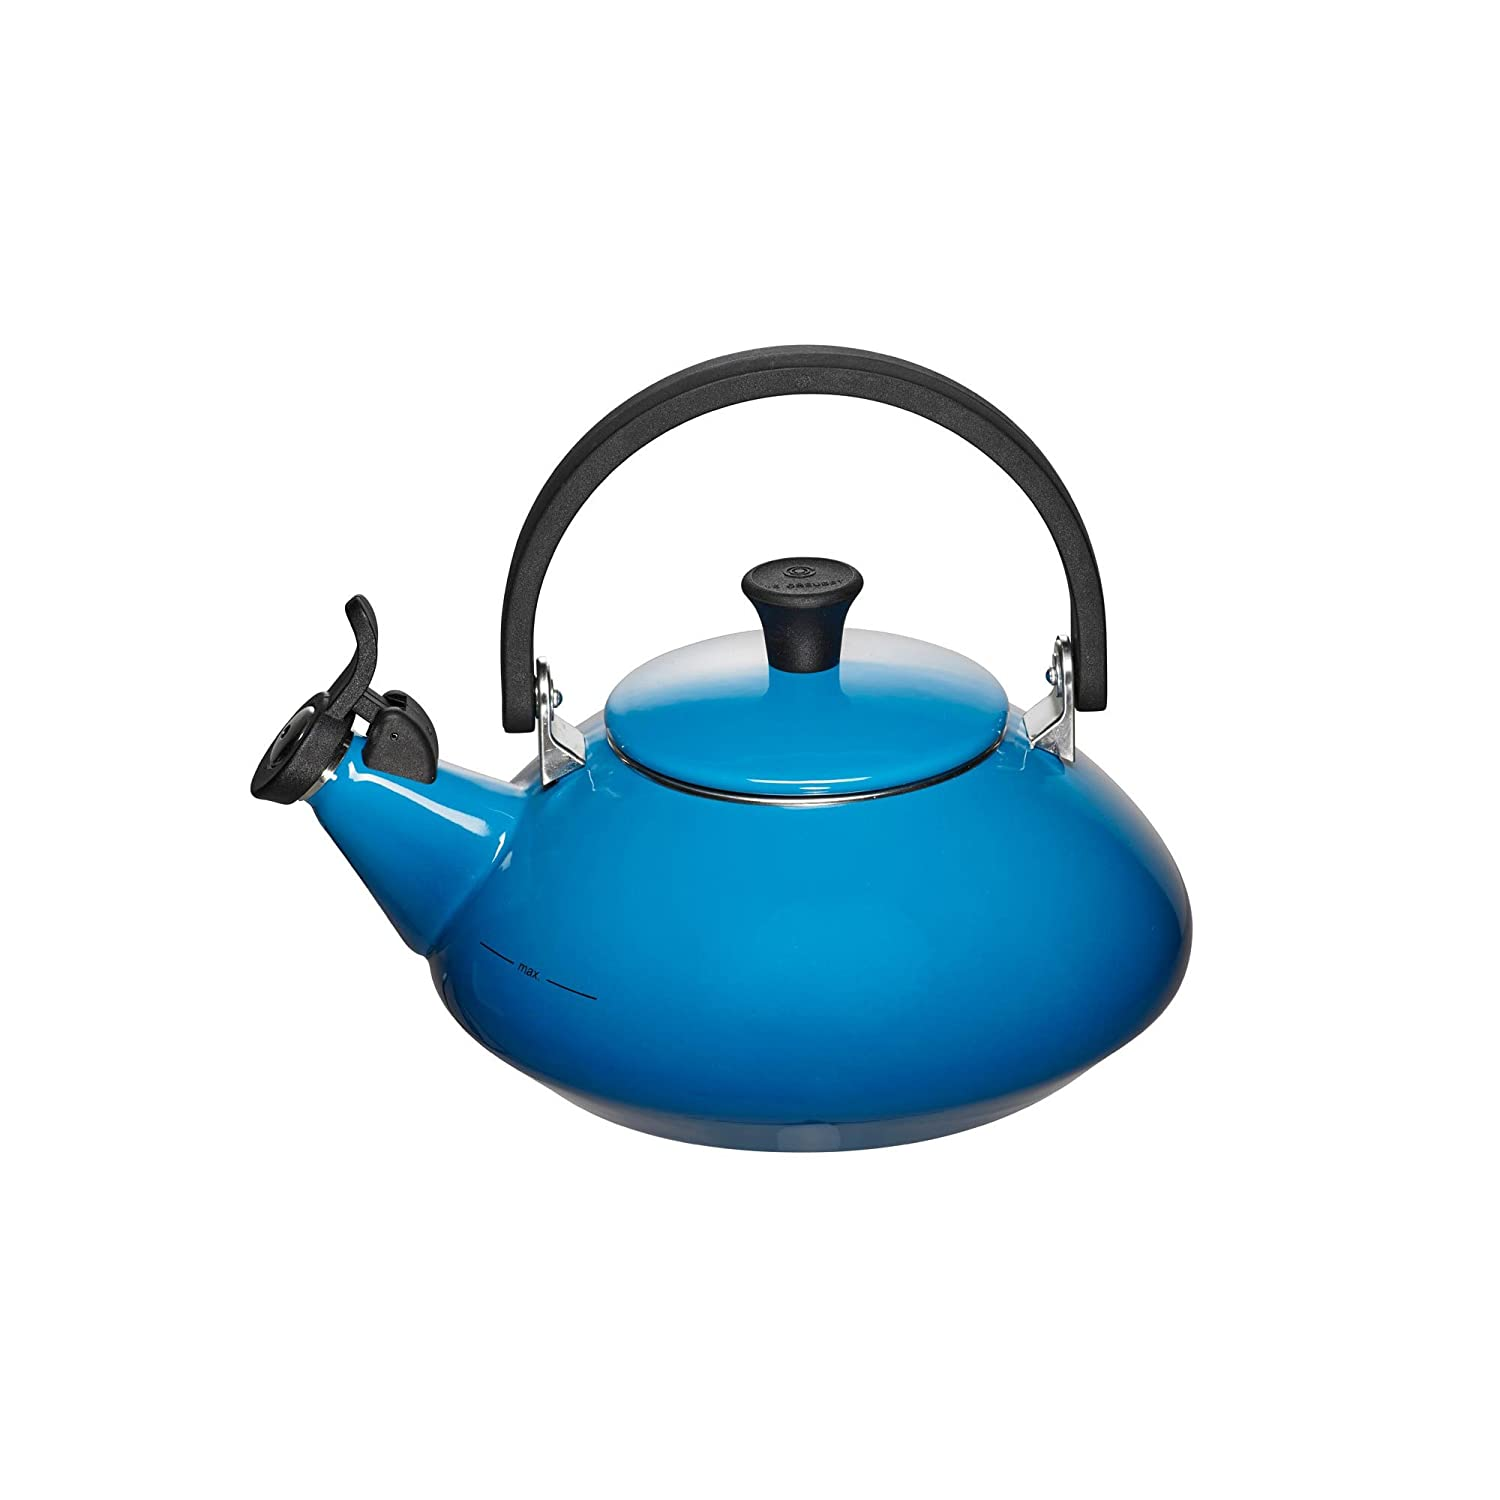 10 Best Tea Kettles 2019 Review and Guide 1